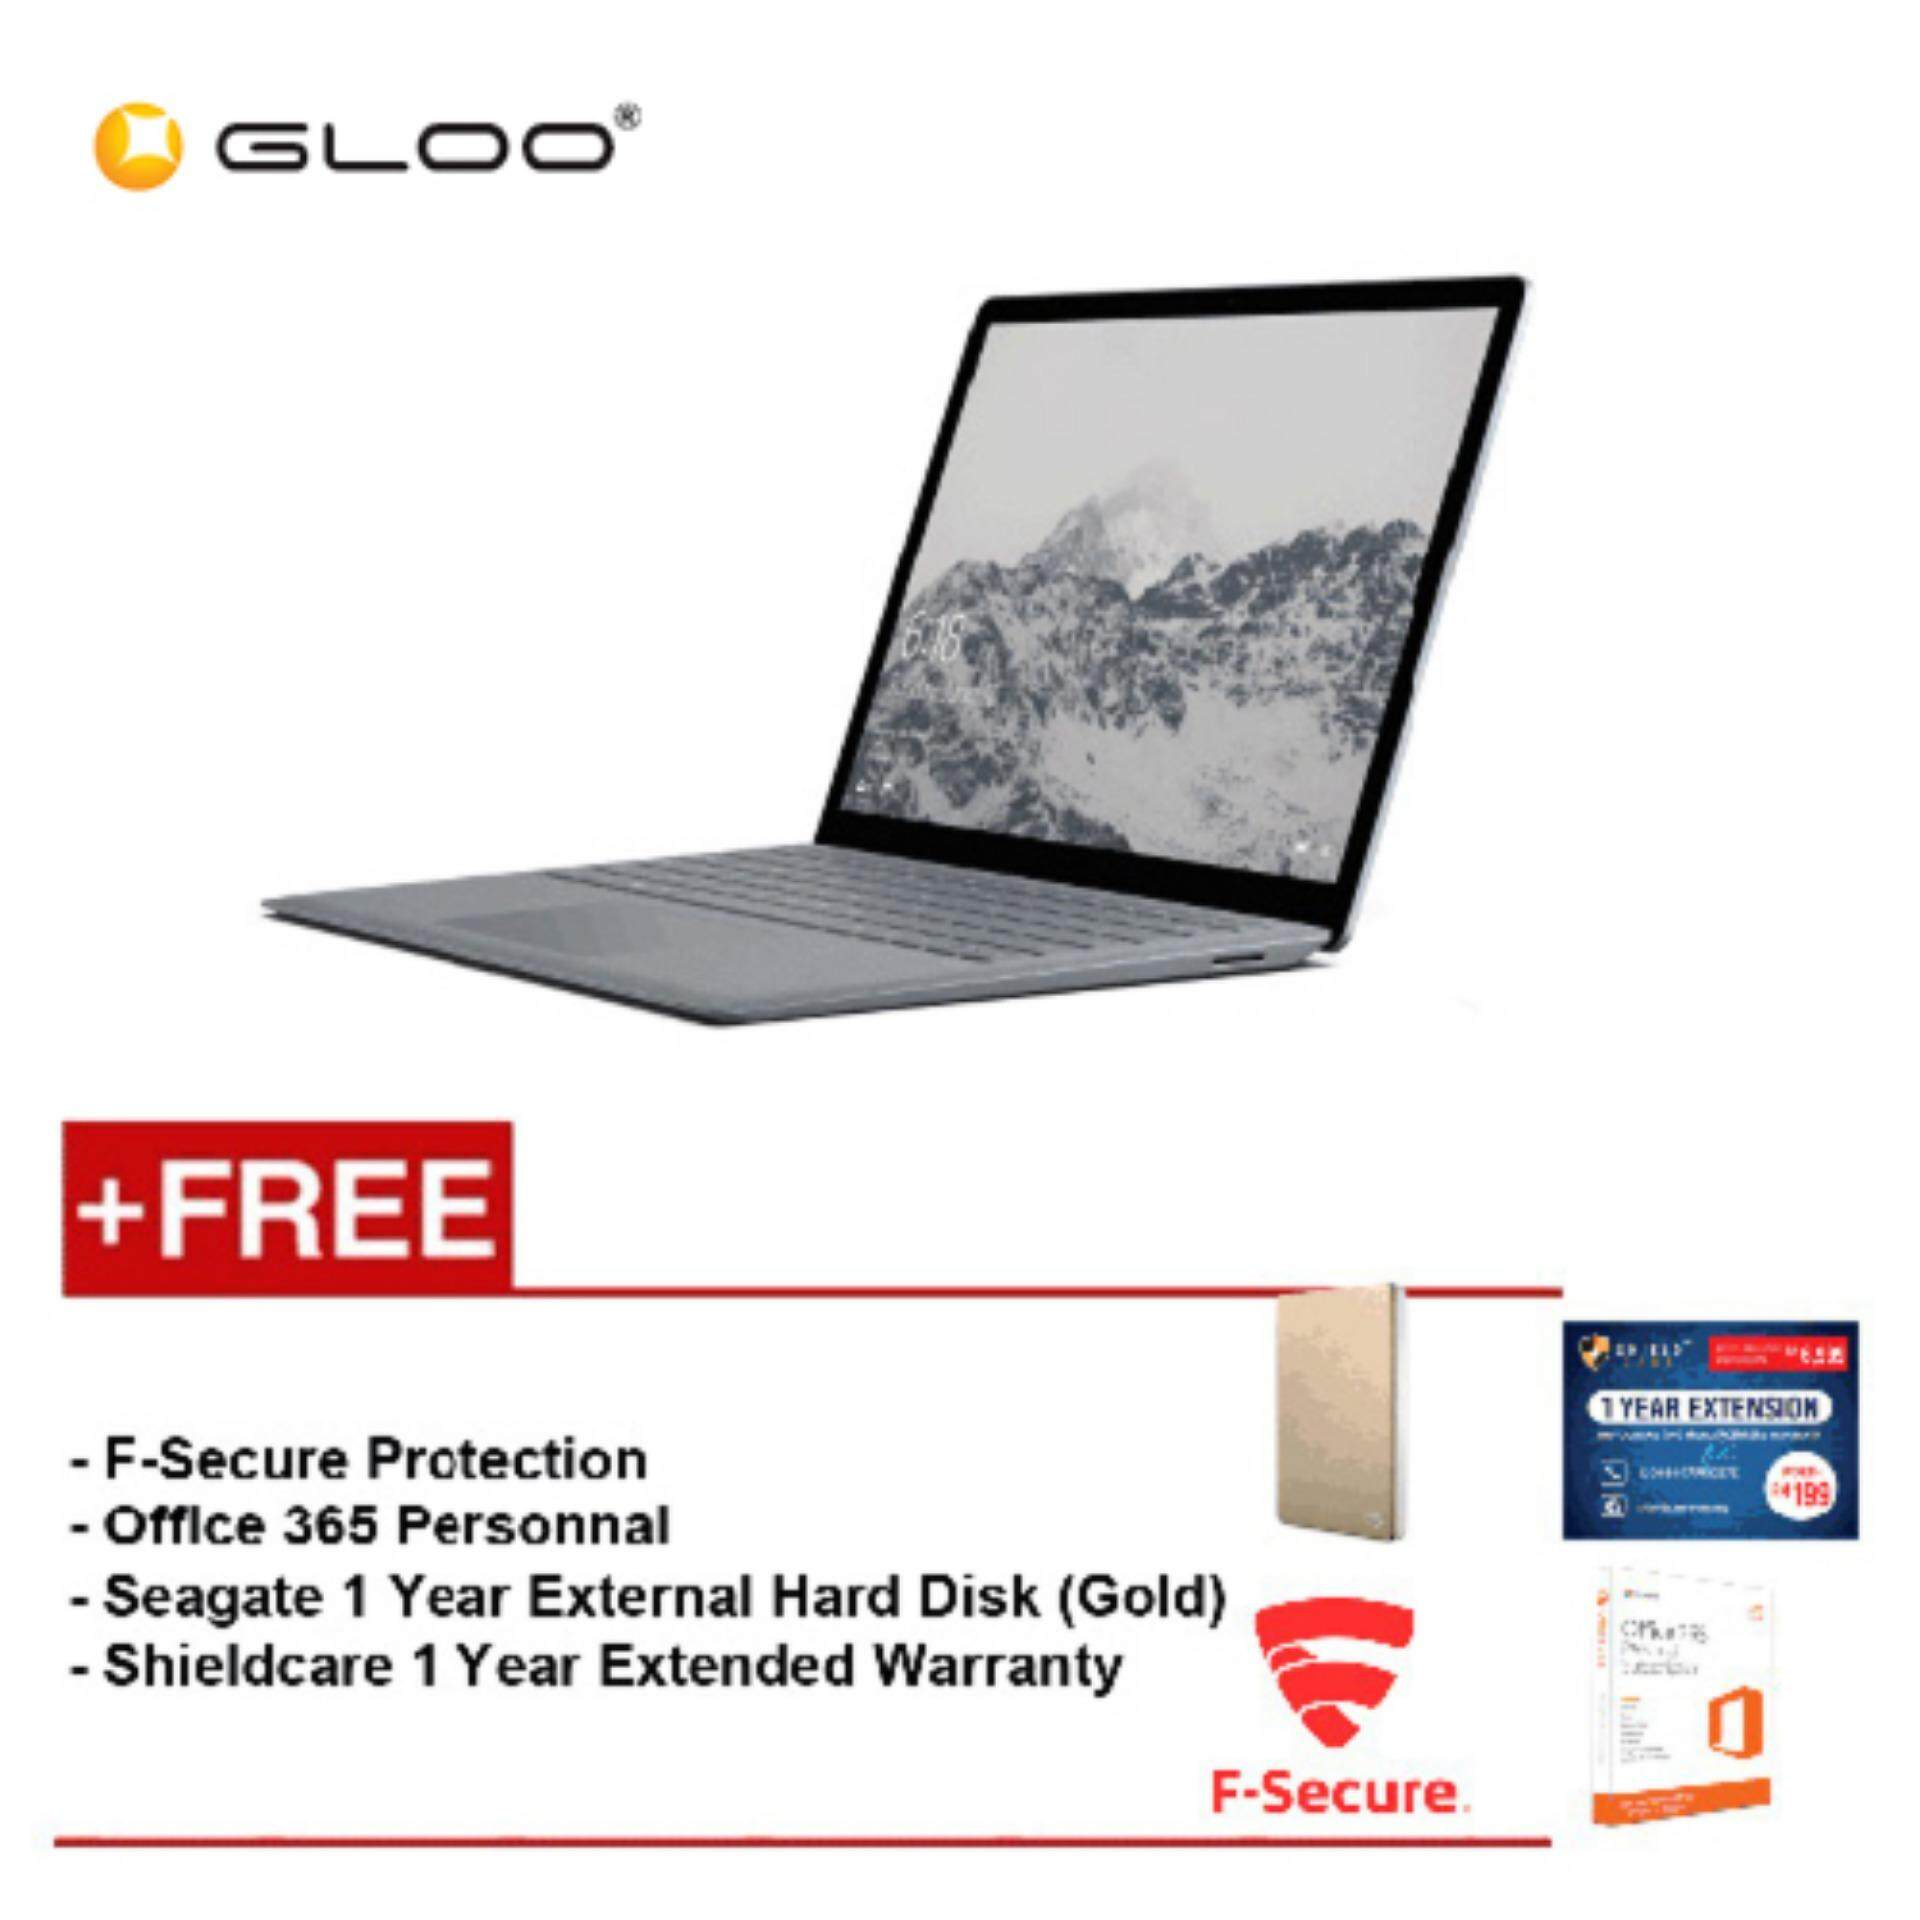 Surface Laptop Core i5/8GB RAM - 256GB + Shield Care 1 Year Extended Warranty + F-Secure End Point Protection + Office 365 Personal + Seagate 1TB Hard Disk Drive (Gold) Malaysia